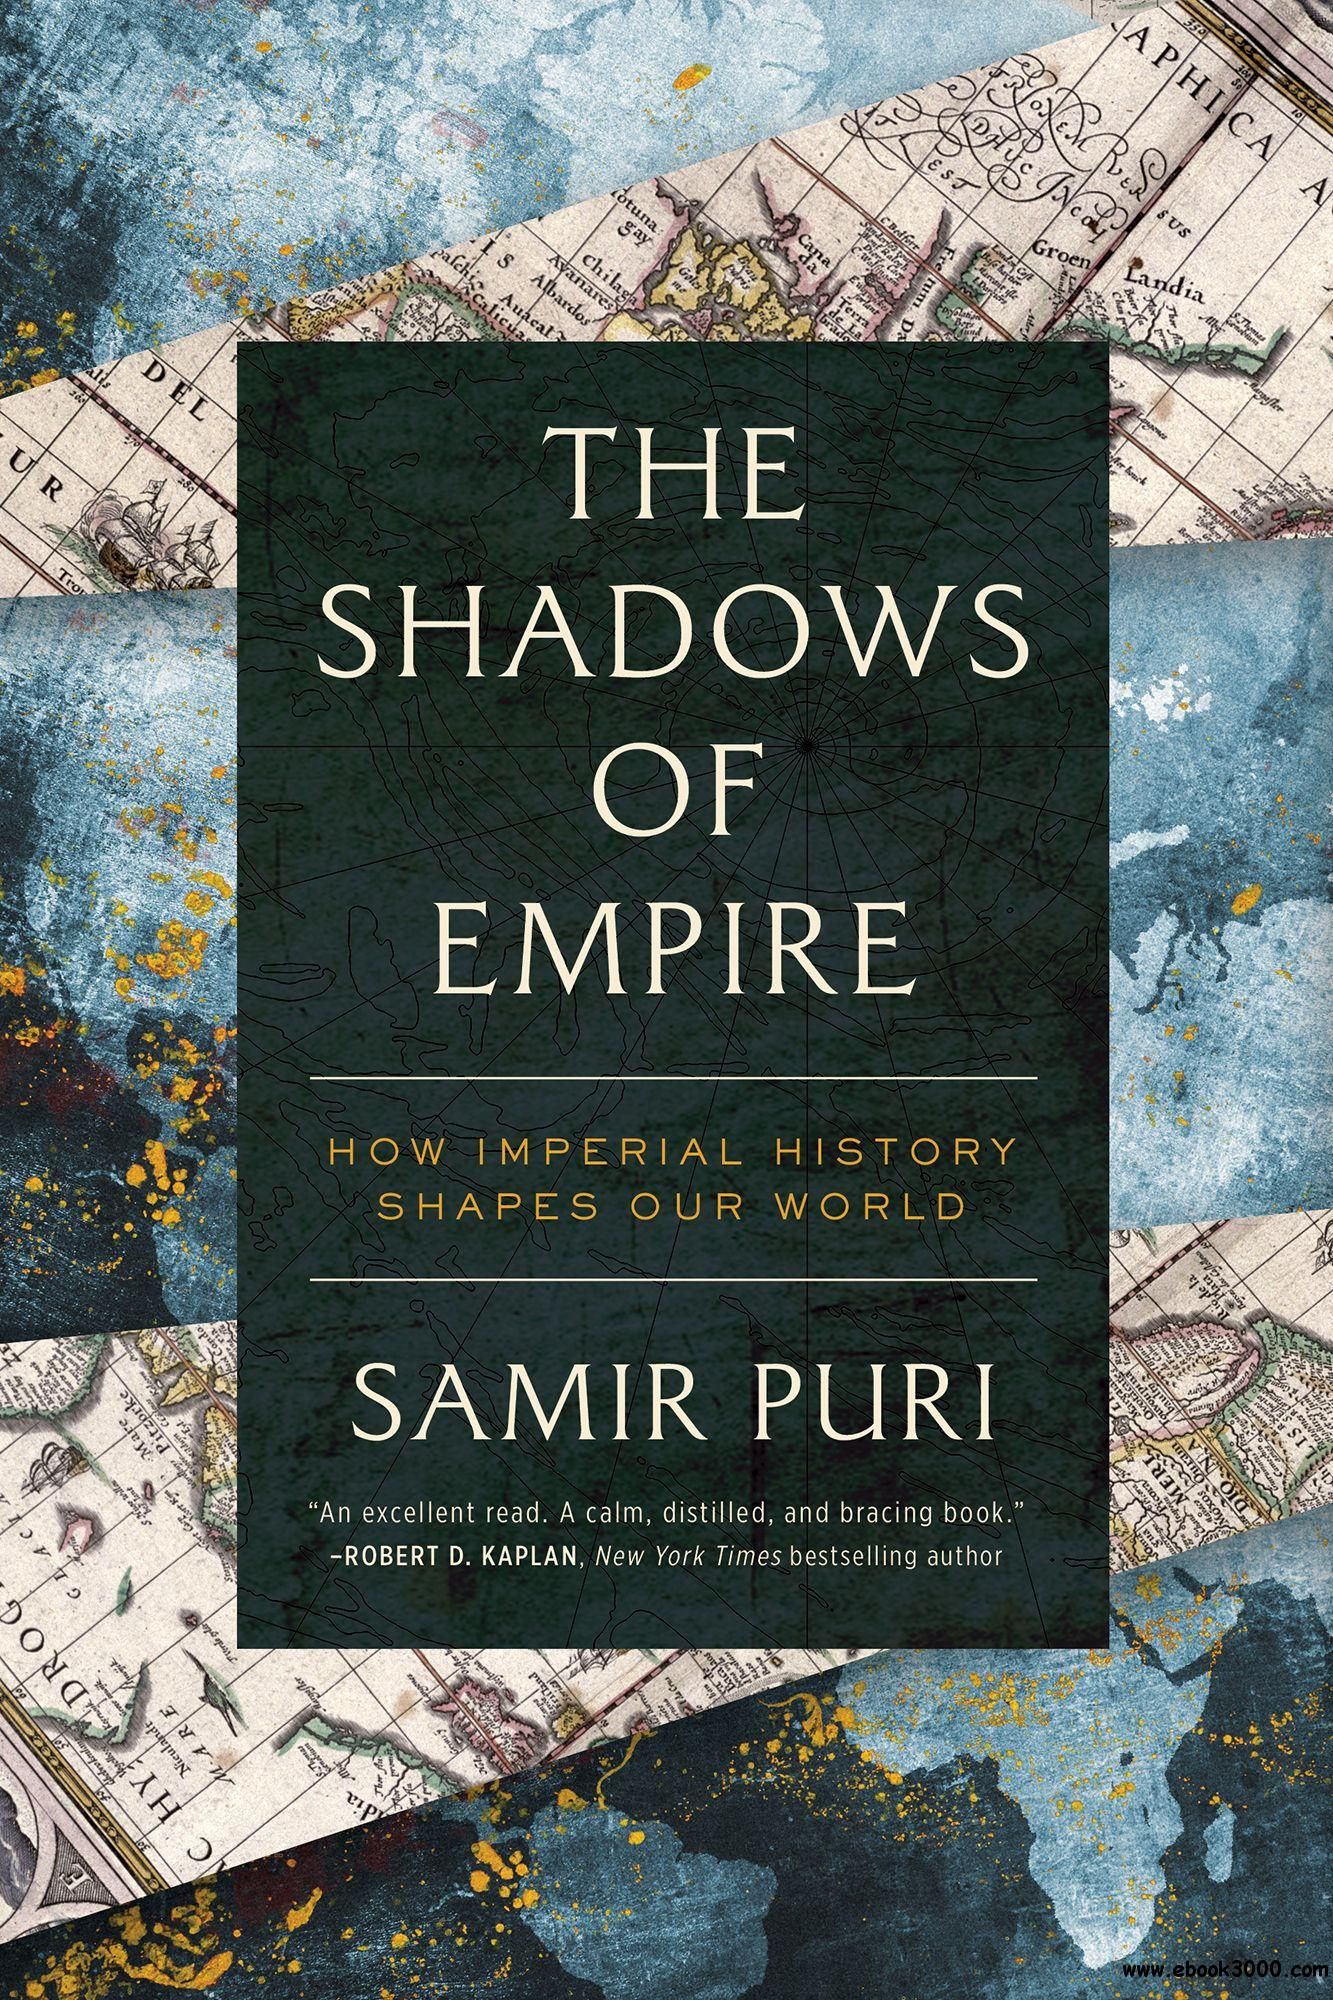 The Shadows of Empire: How Imperial History Shapes Our World